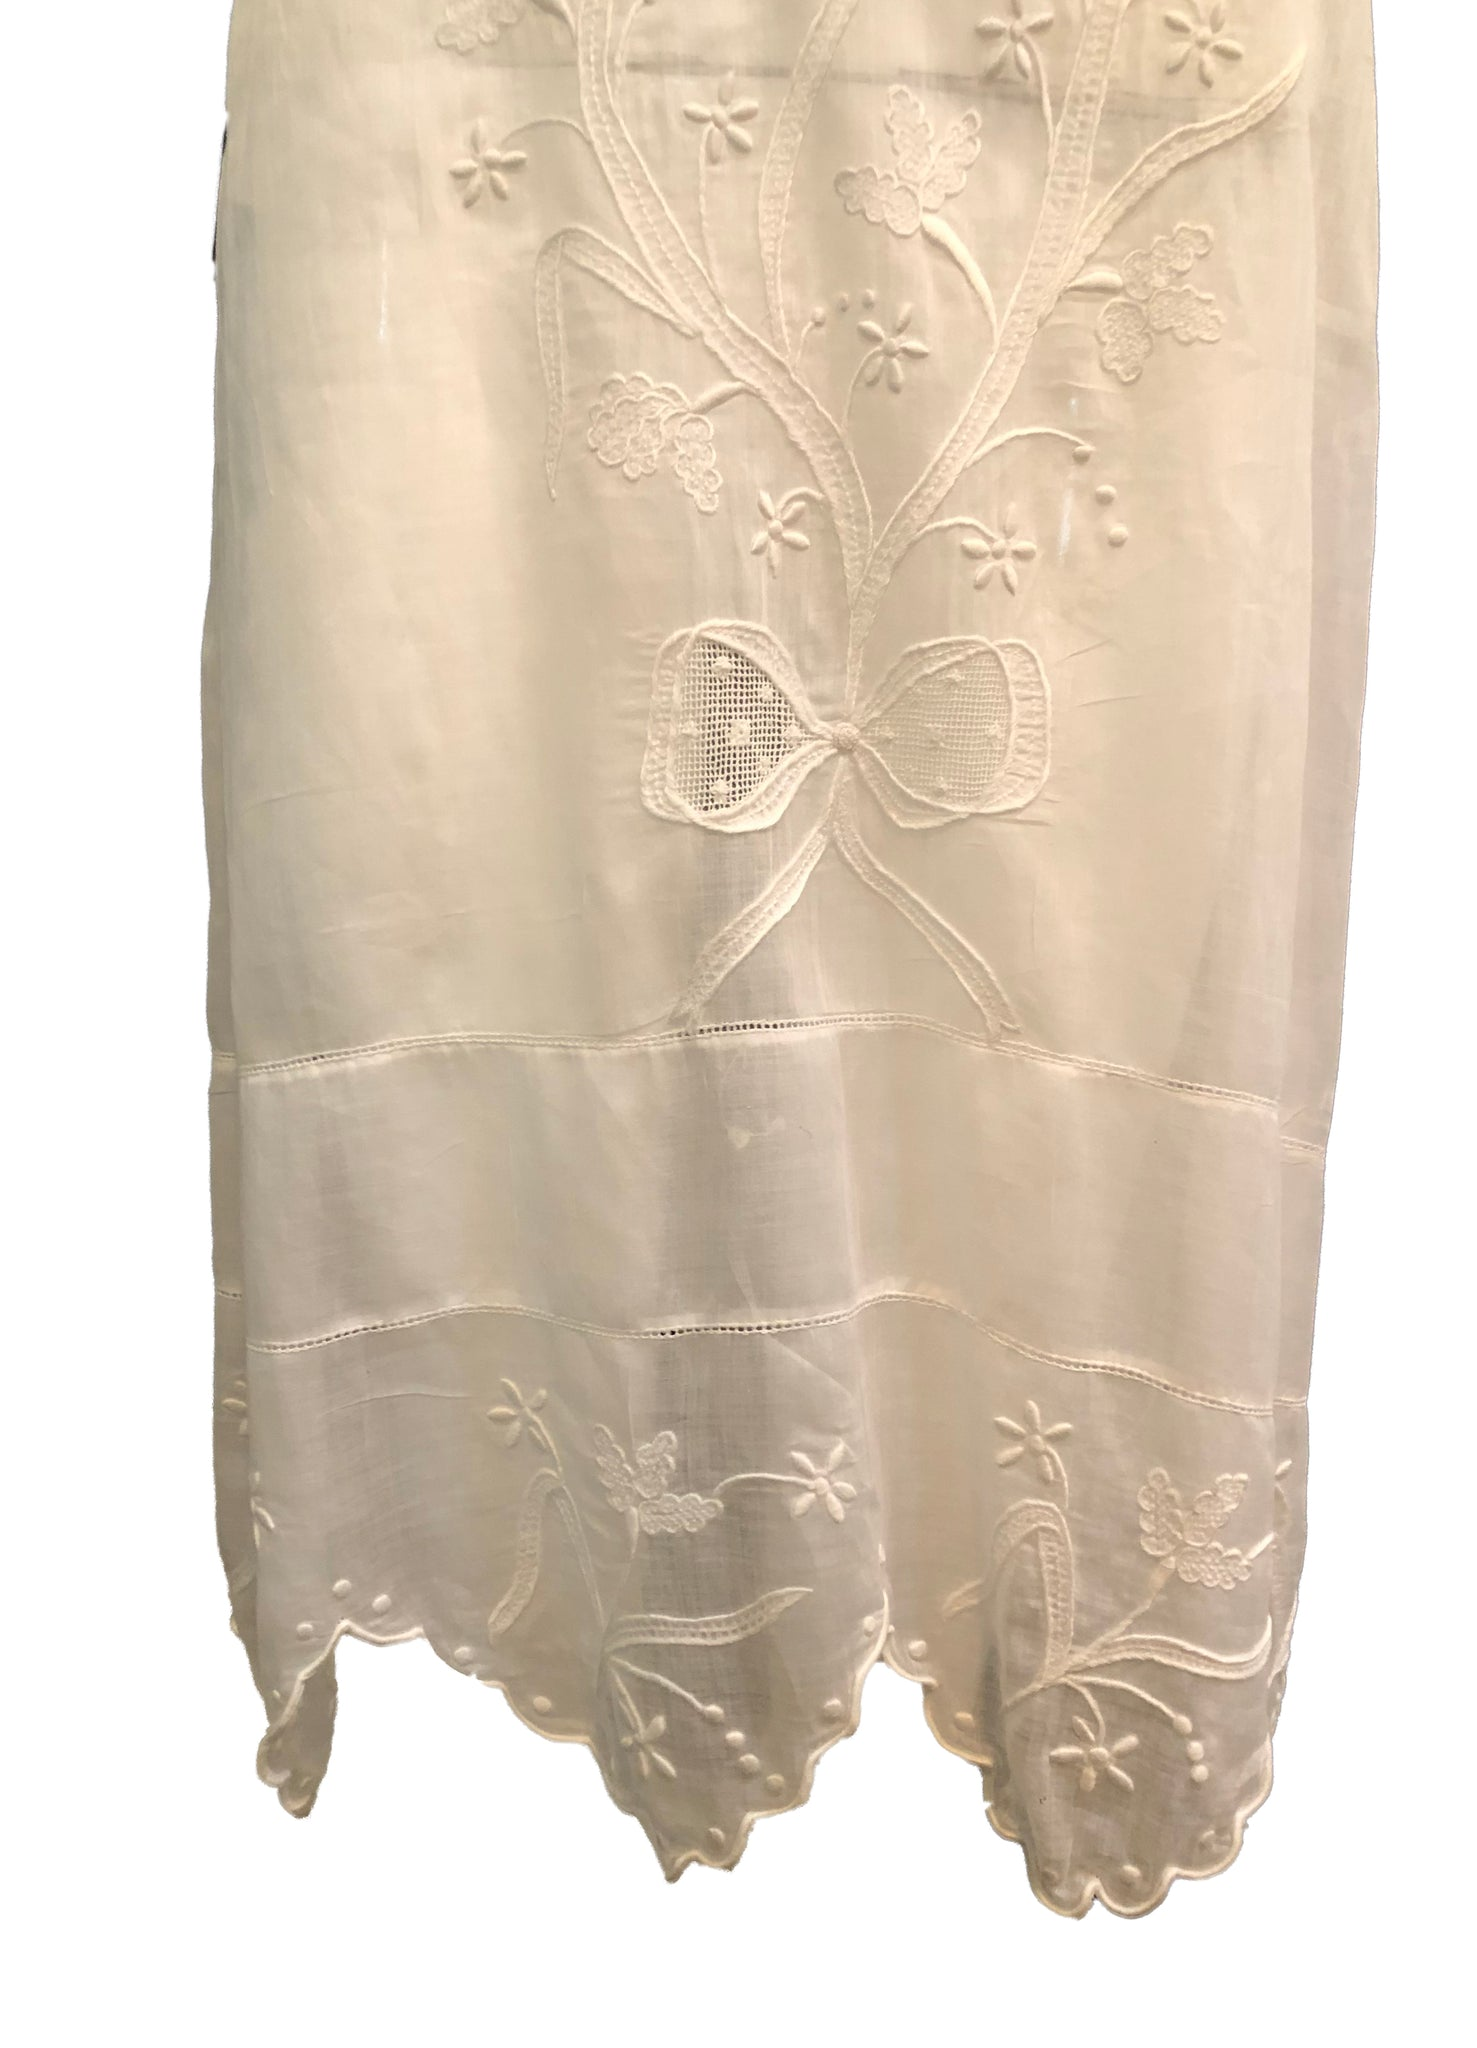 20s Dress White Cotton Voile with Delicate Embroidery and Lace trim DETAIL 4 of 4